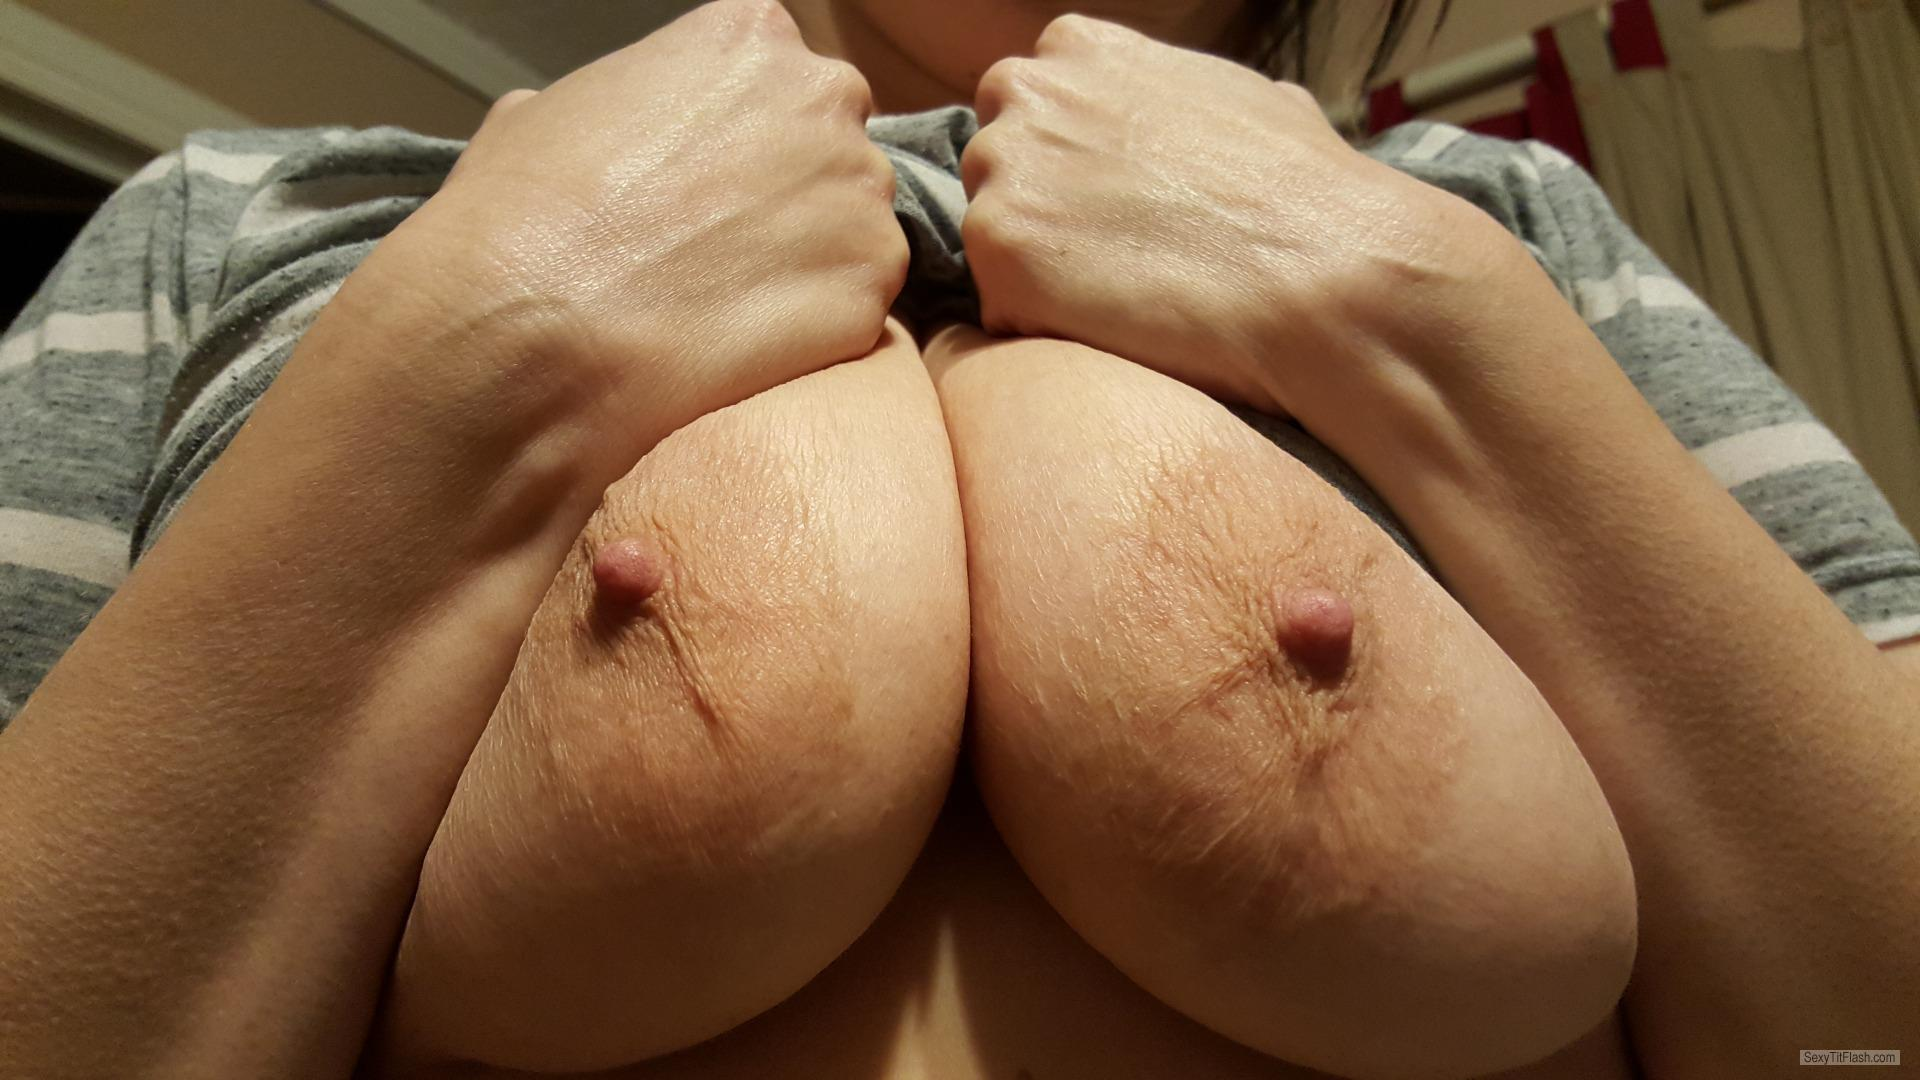 Tit Flash: Wife's Big Tits - Loves To Share from United States